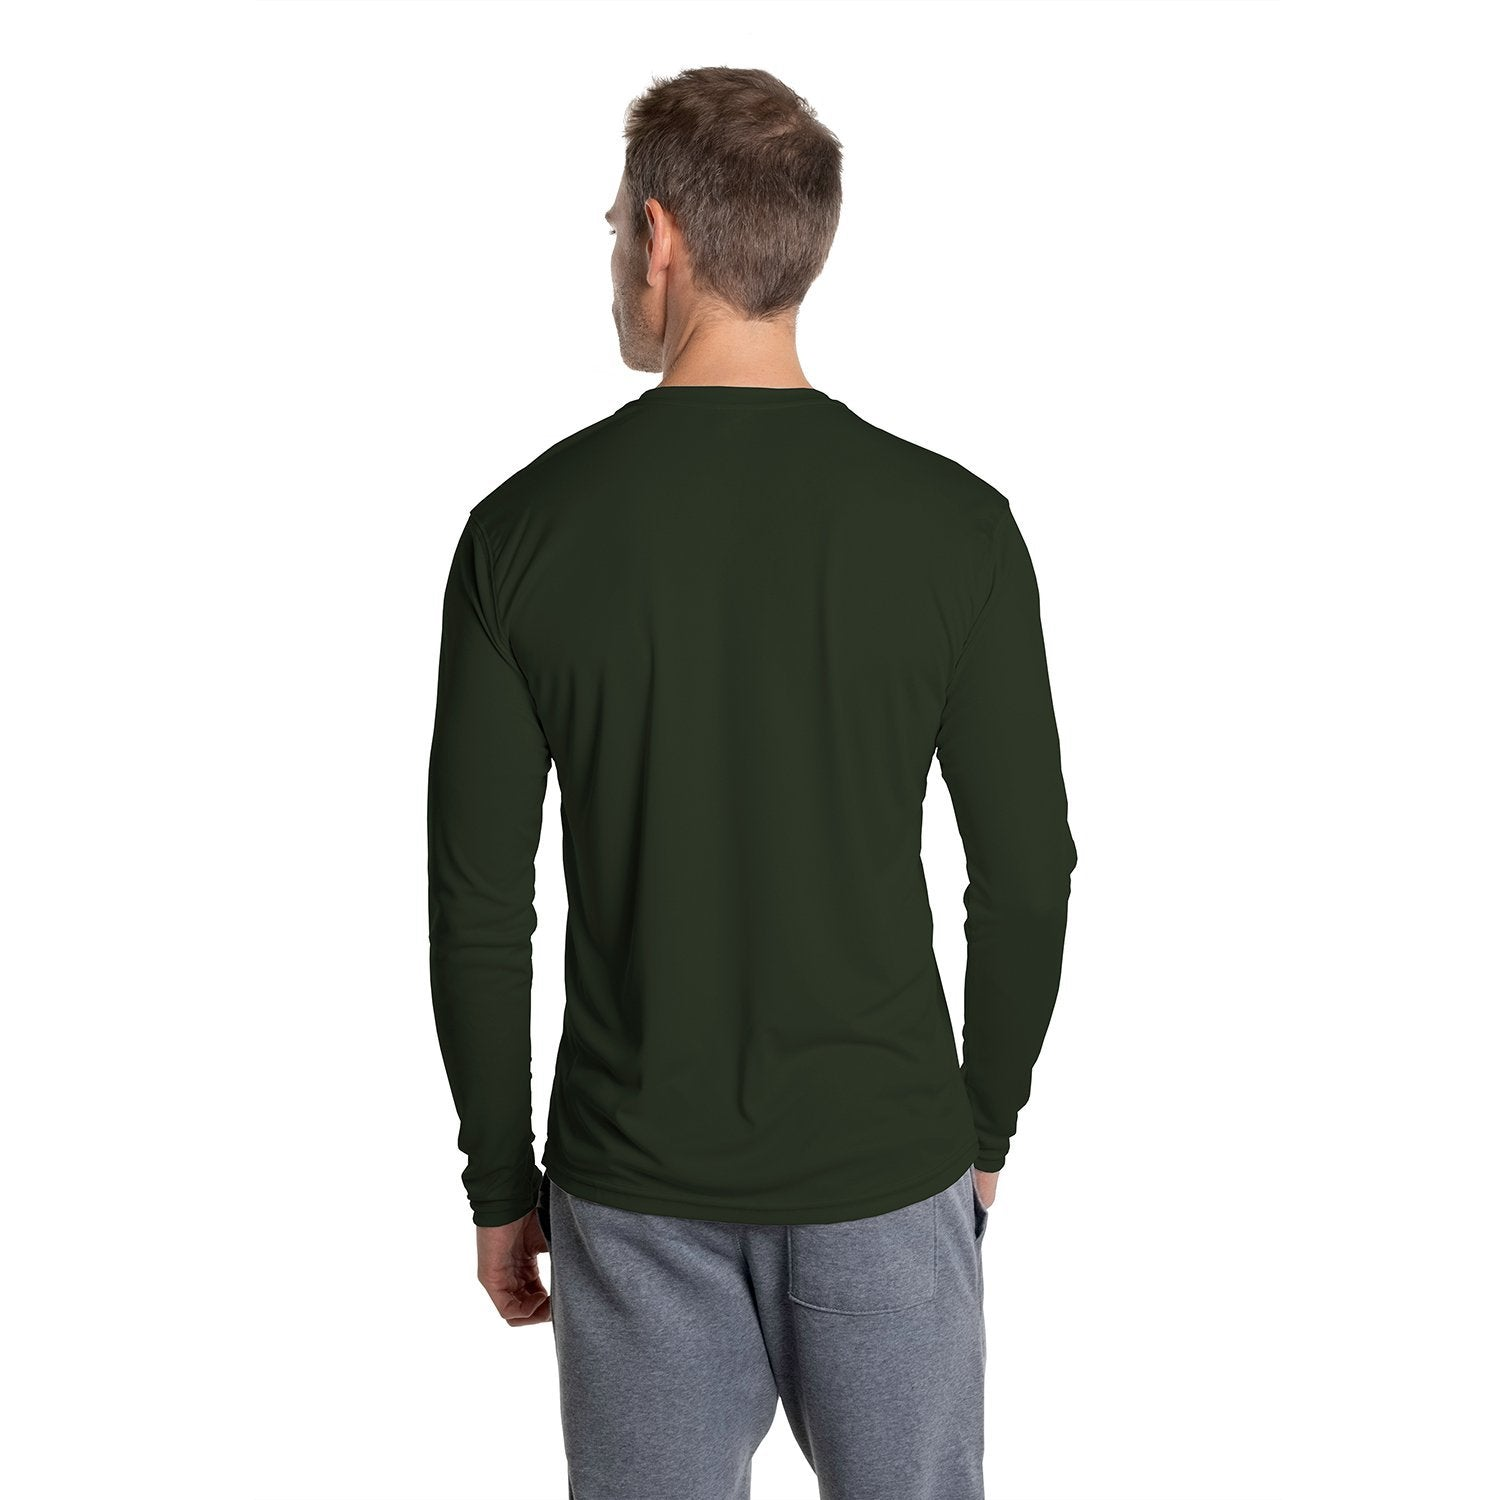 M700OD Solar Long Sleeve - OD Green